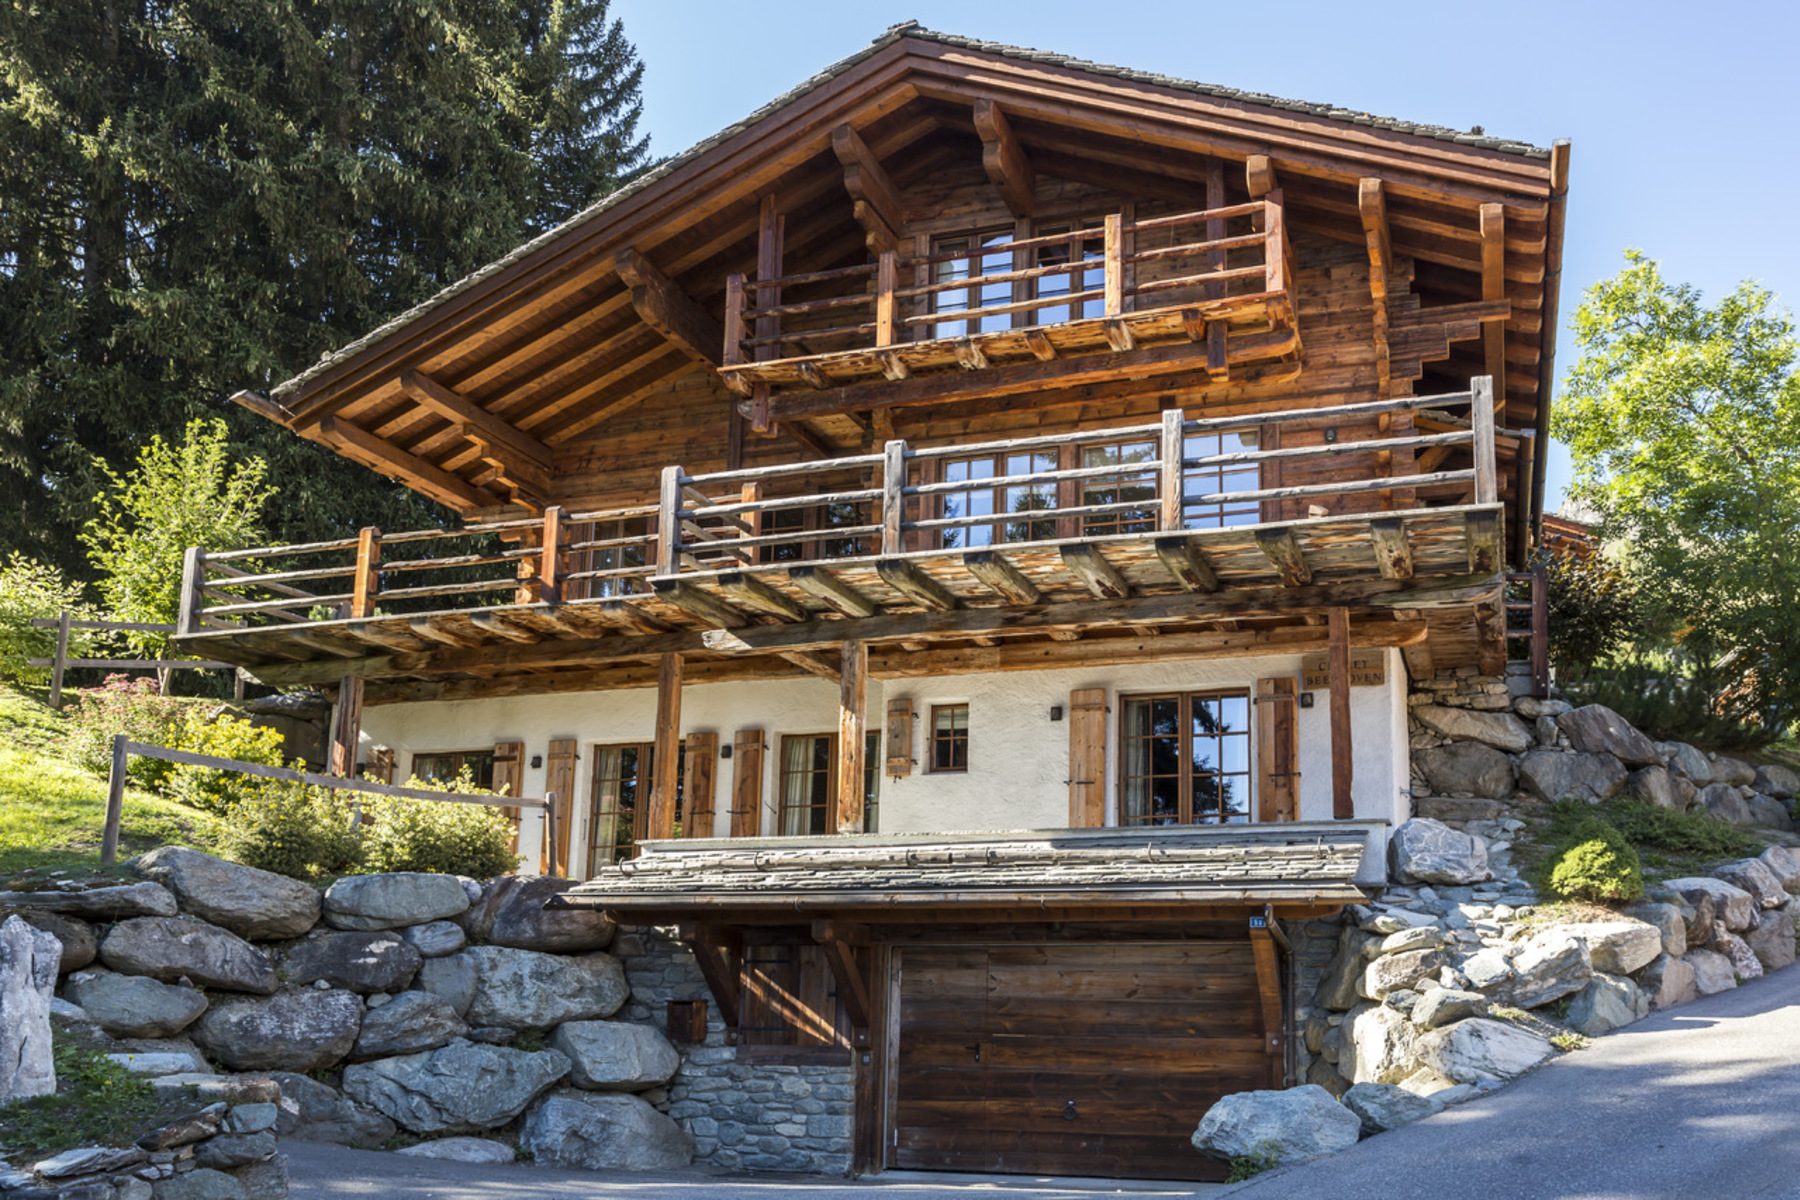 Single Family Home for Sale at Chalet BEETHOVEN Verbier, Valais, 1936 Switzerland